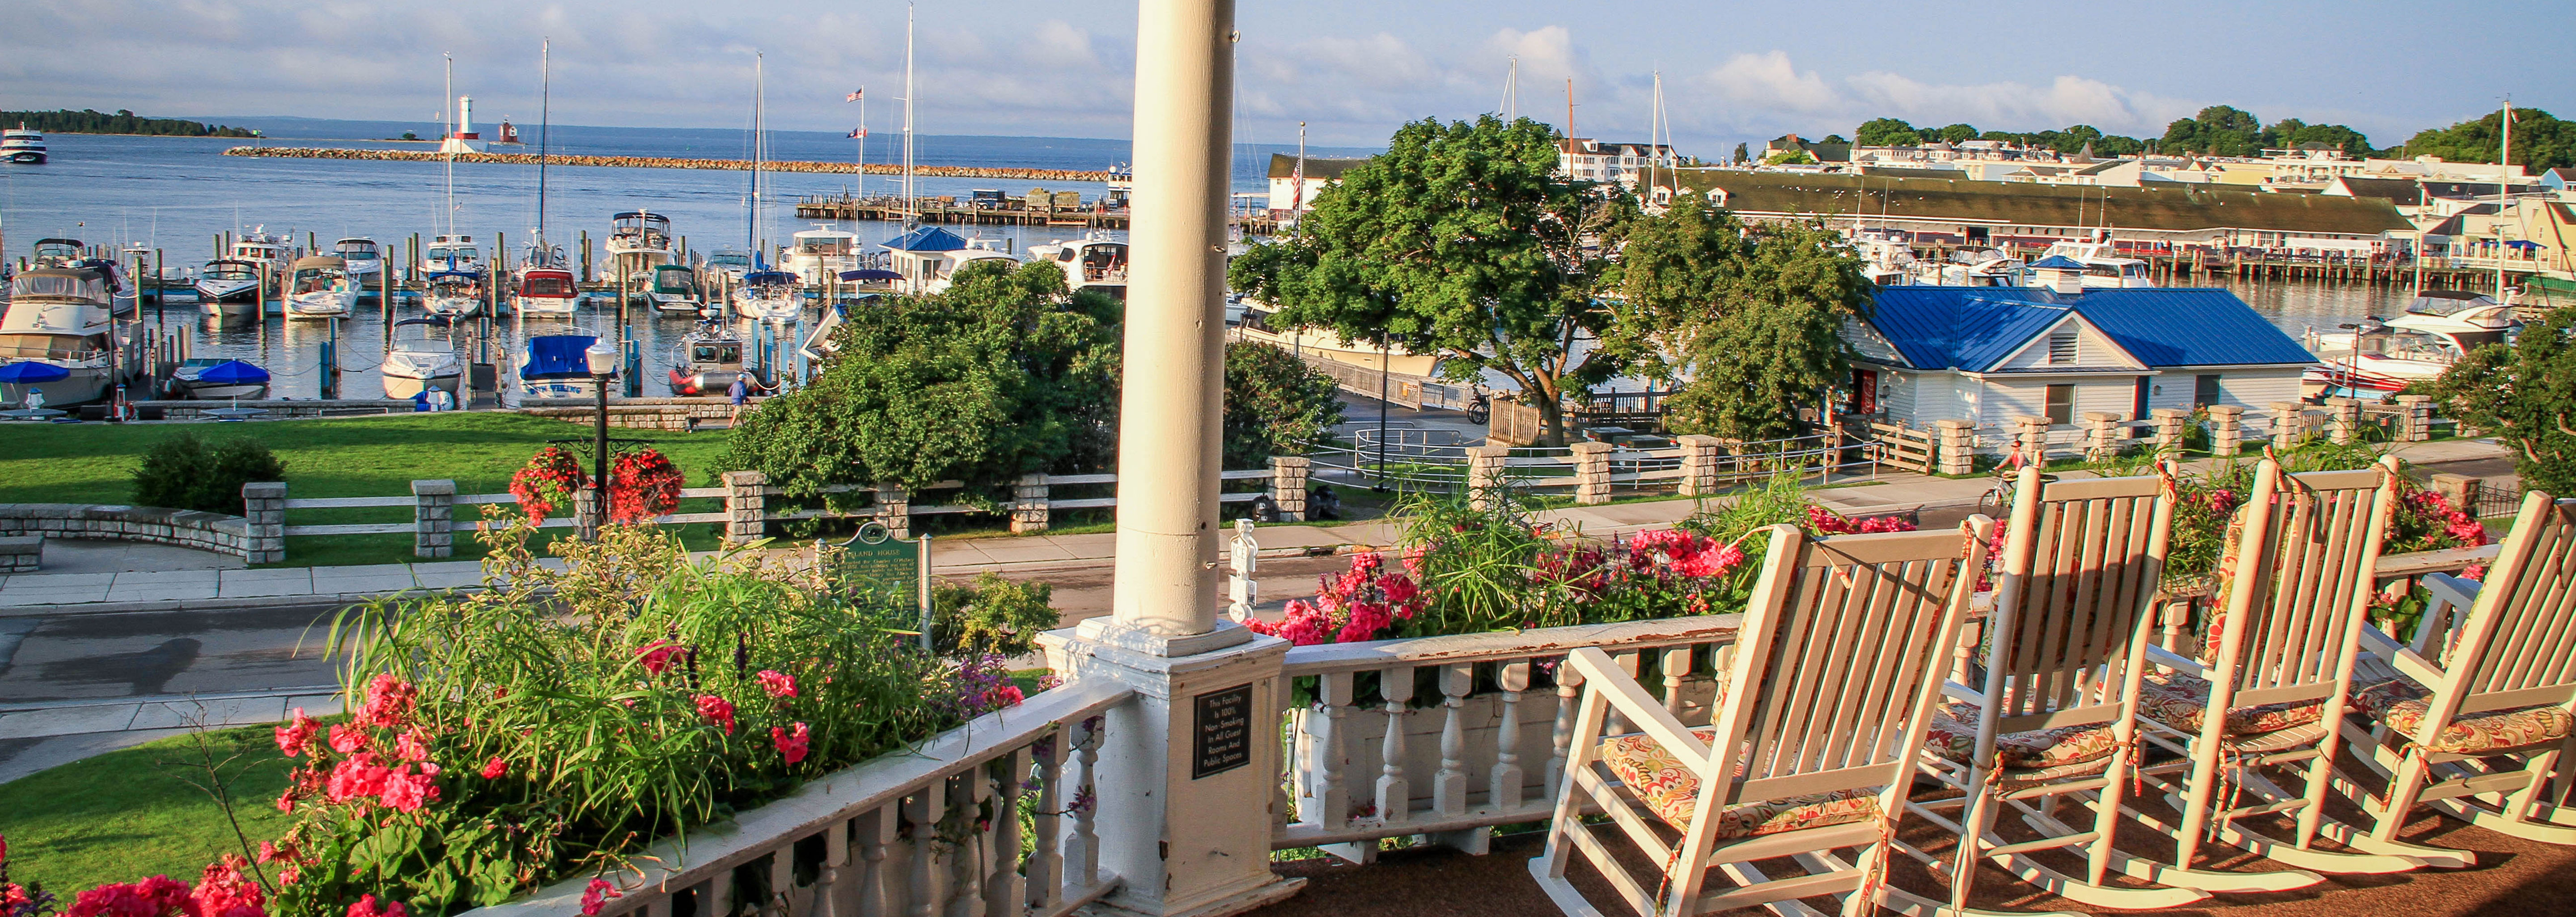 Image of Marina View from Front Porch, Island House Hotel in Mackinac Island, Michigan, 1852, Member of Historic Hotels of America, Explore